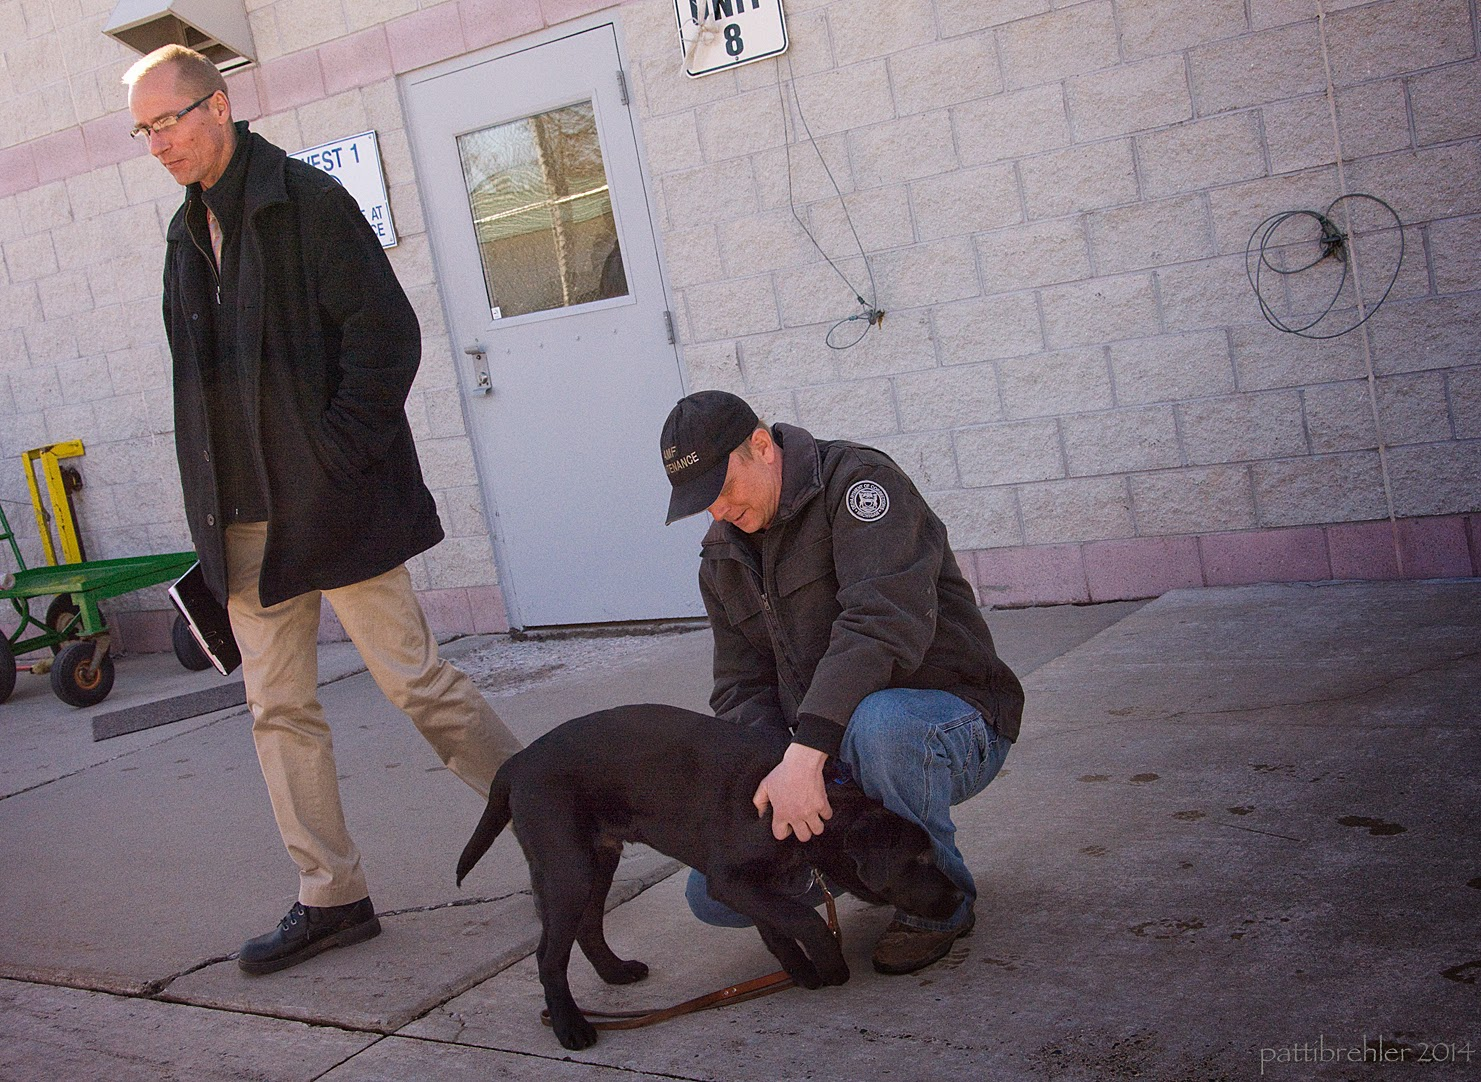 A man with glasses wearing a dark pea coat and khakis is walking to the left of the picture. A second man is squatting on the cement, he is wearing a black baseball cap and dark jacket and blue jeans. He is lookig down at a black lab puppy that is standing in front of him with its head low by his left leg. The man is touching the puppy's body with his hands. The puppy has a leash dragging behind him.